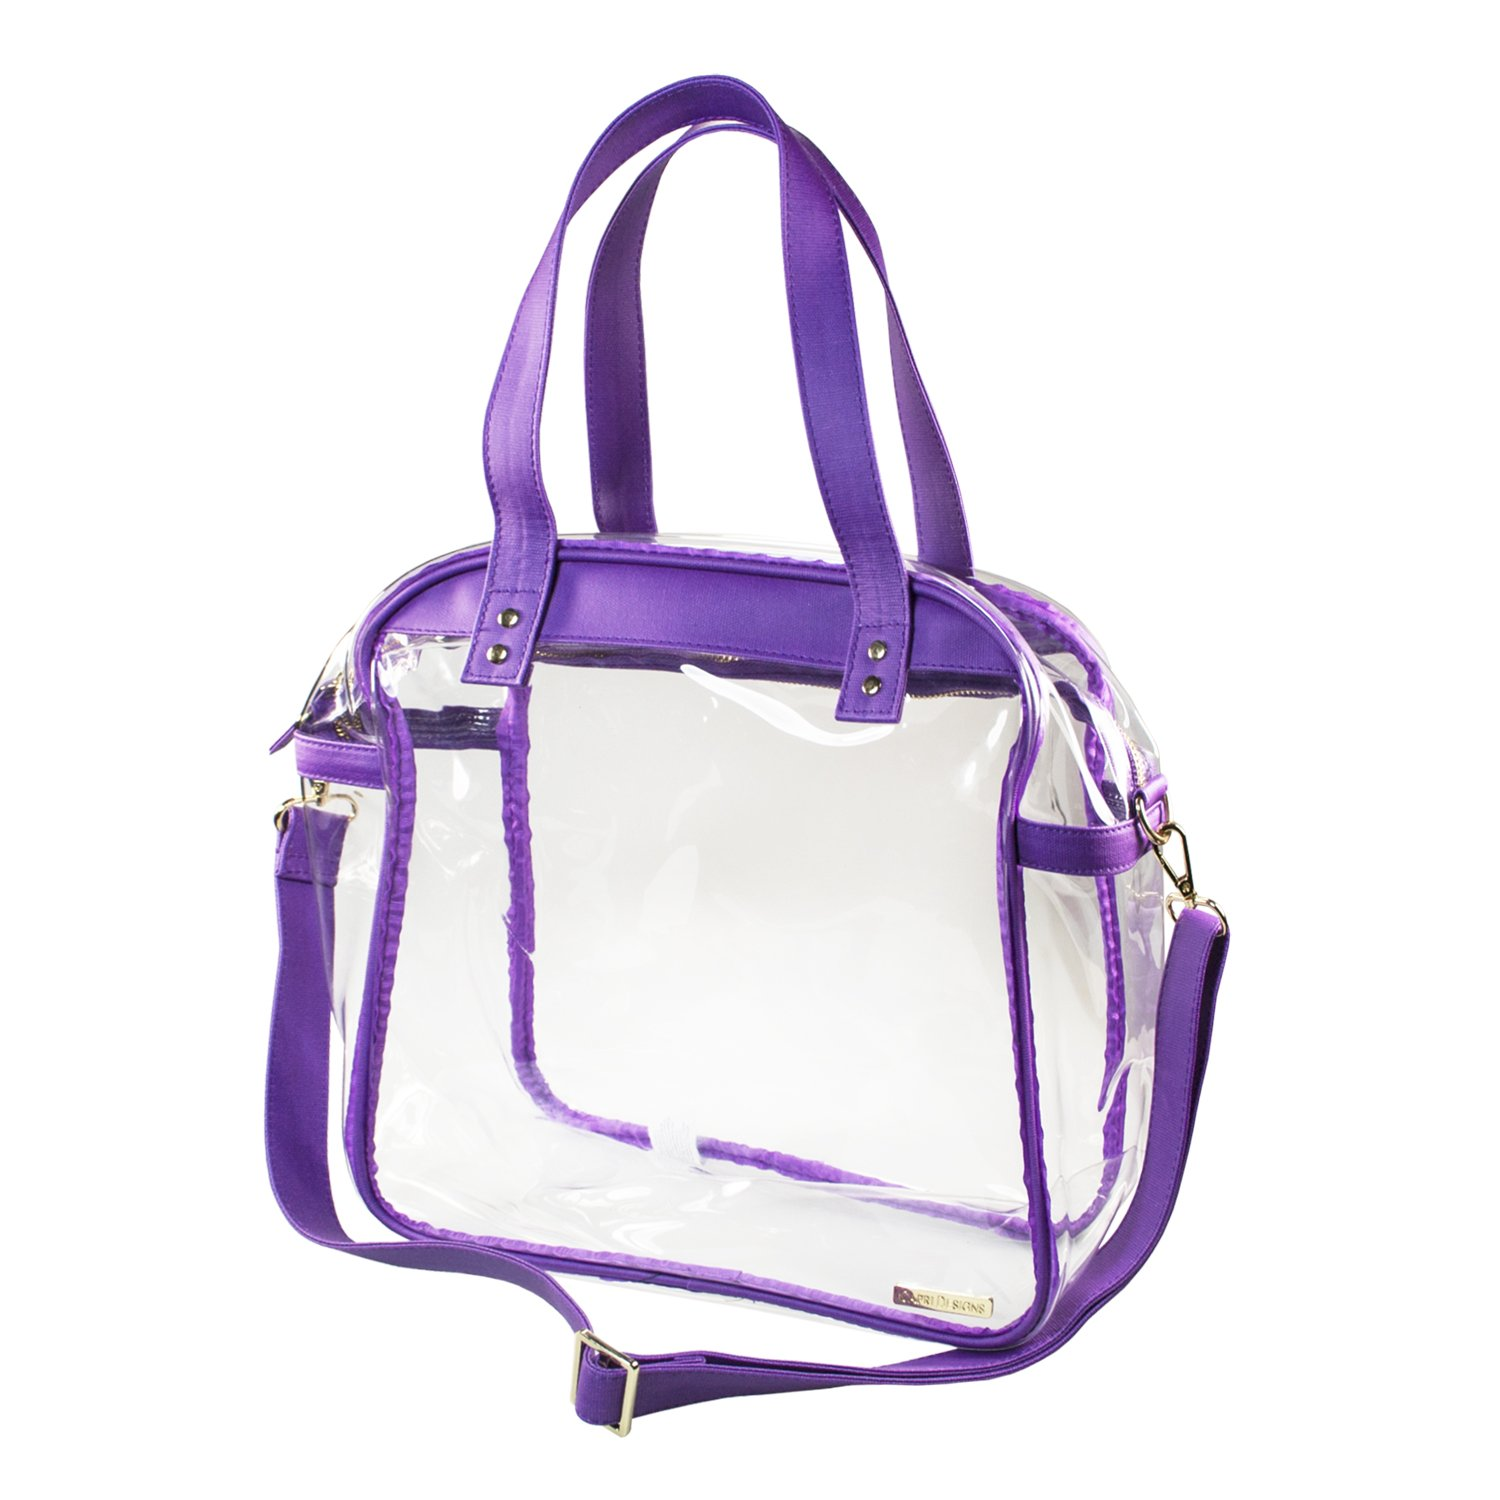 Capri Designs Stadium Approved Cotton Canvas Clear Carryall Tote Bag (Purple)